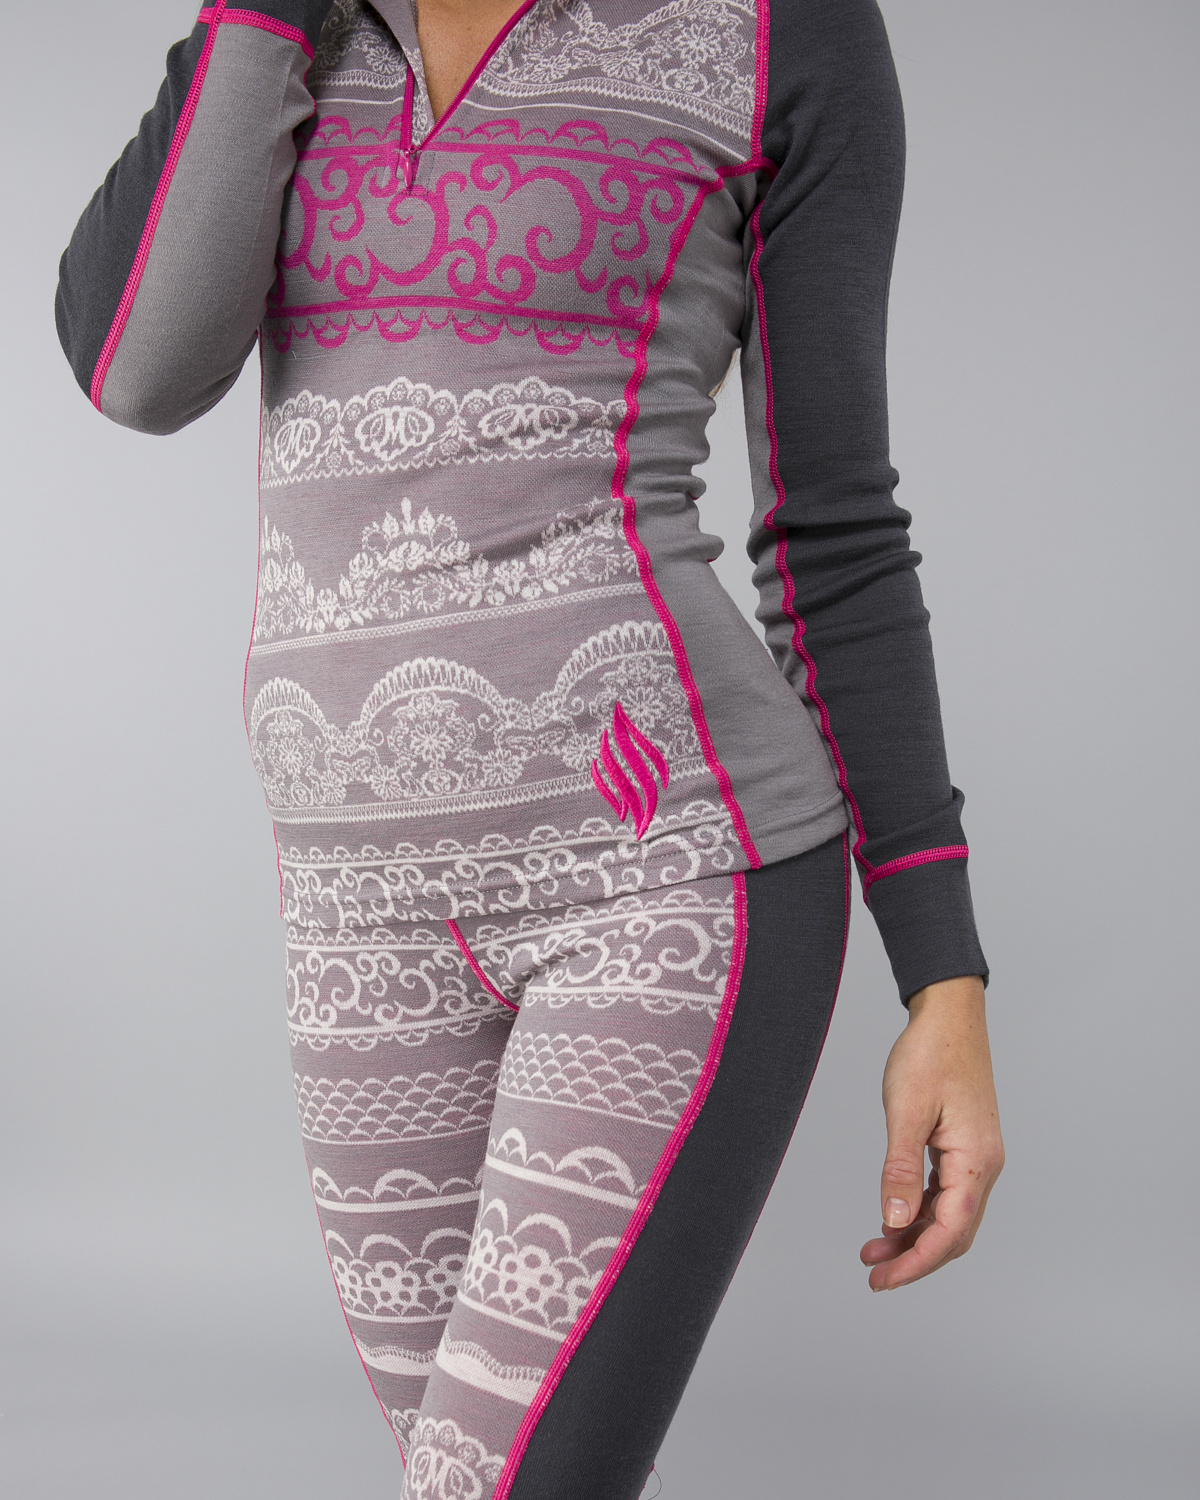 We-Are-Fit-Lace-Merino-Longsleeve5